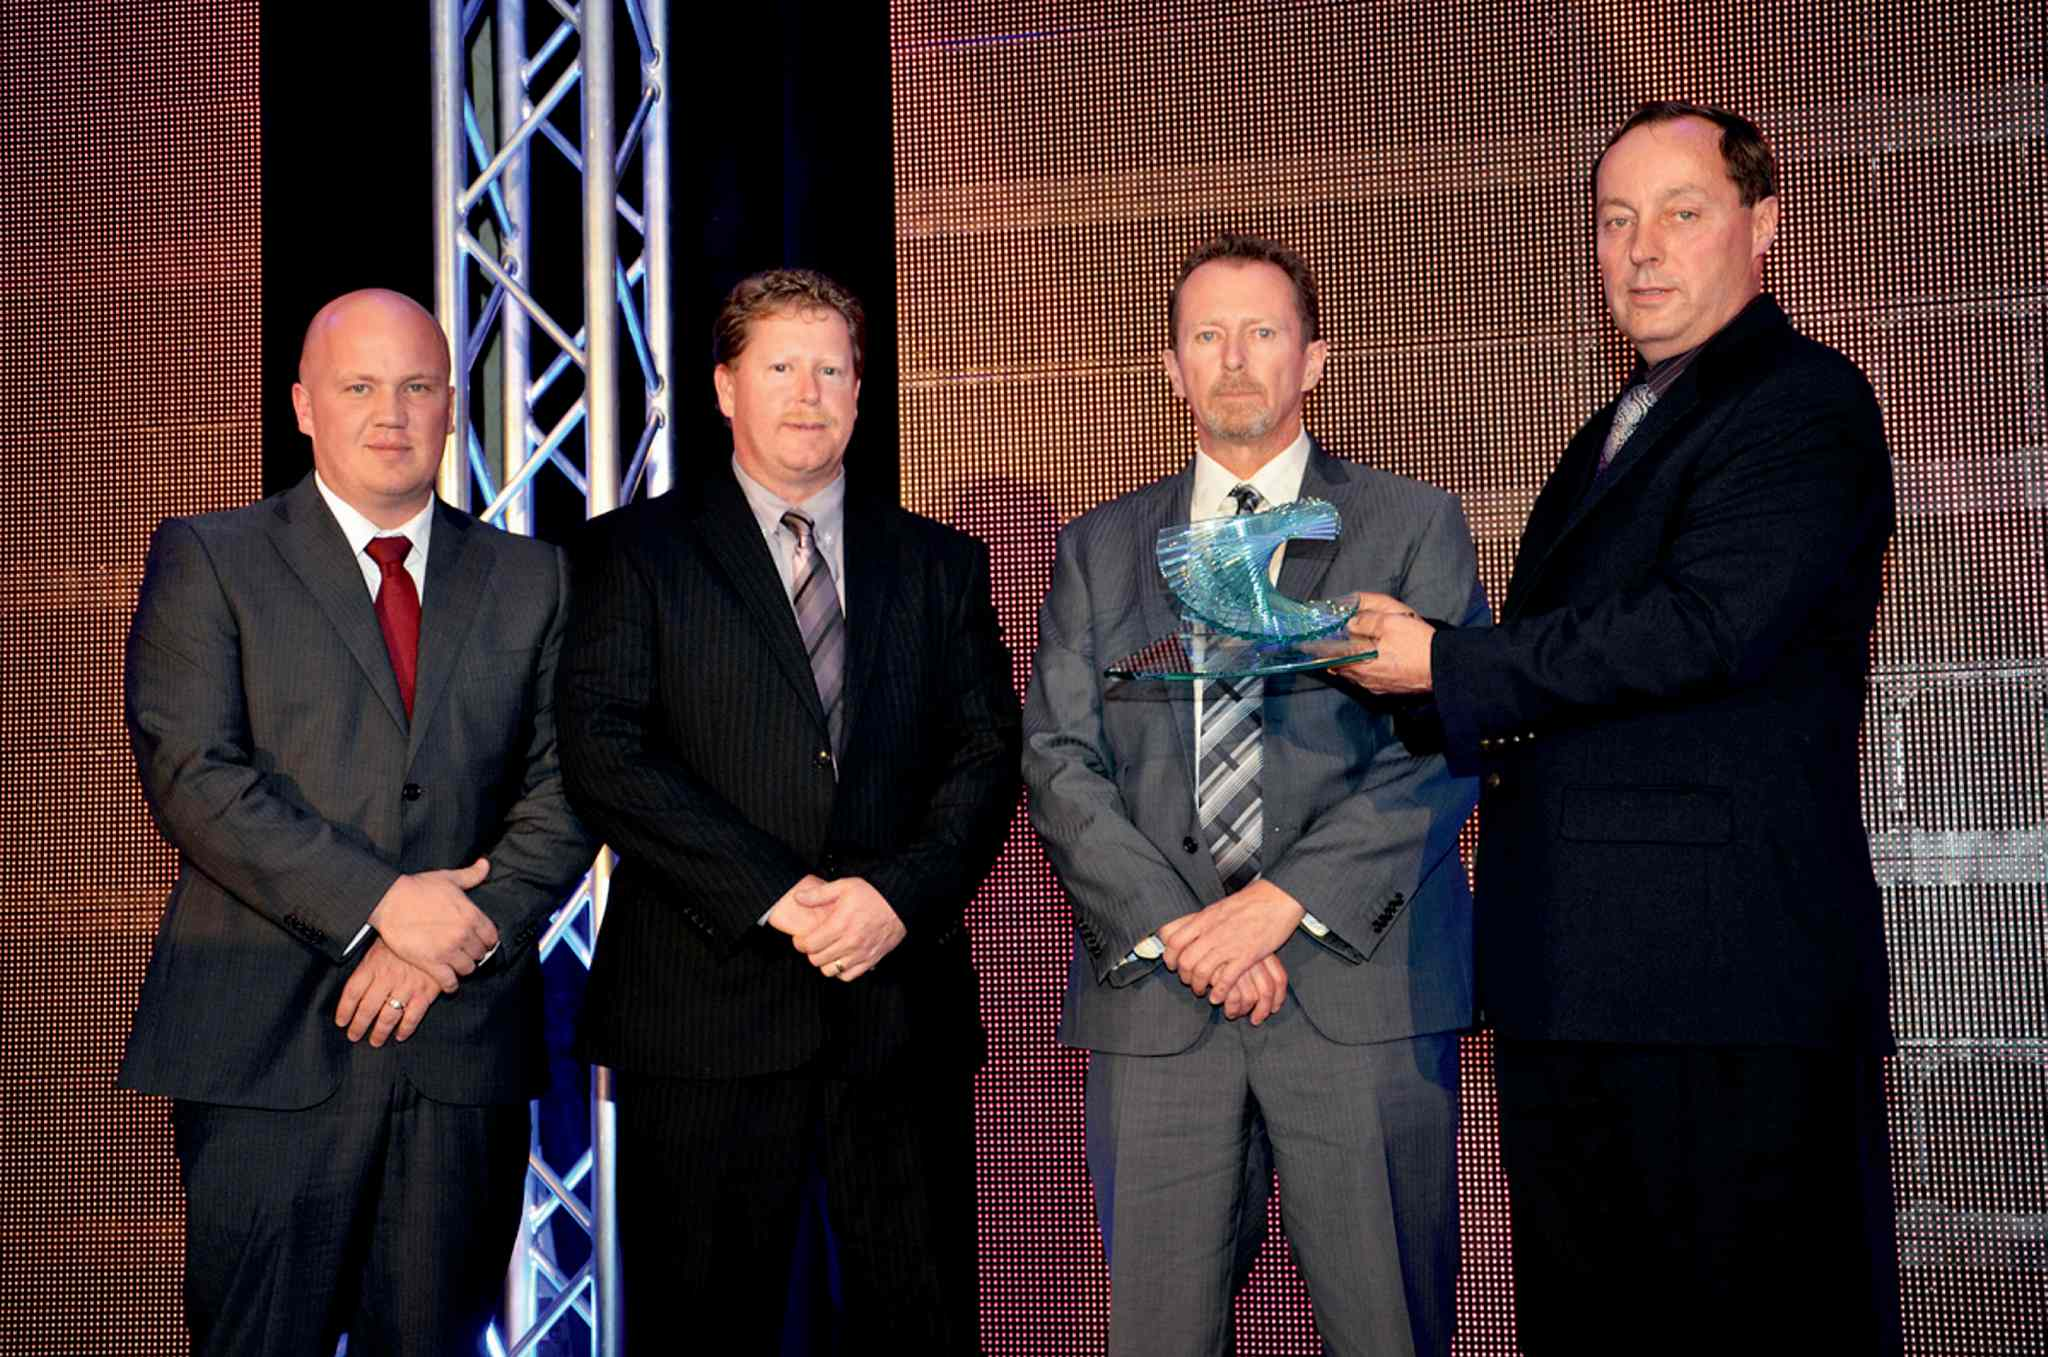 Chabot Implements received the MBiz award for rural long term achievement on Oct. 17. From left to right: Steinbach store manager Corey Chabot and brothers/partners Gilles and Bernie Chabot are presented the award by Karl Kynoch, Manitoba Pork Council chairman.